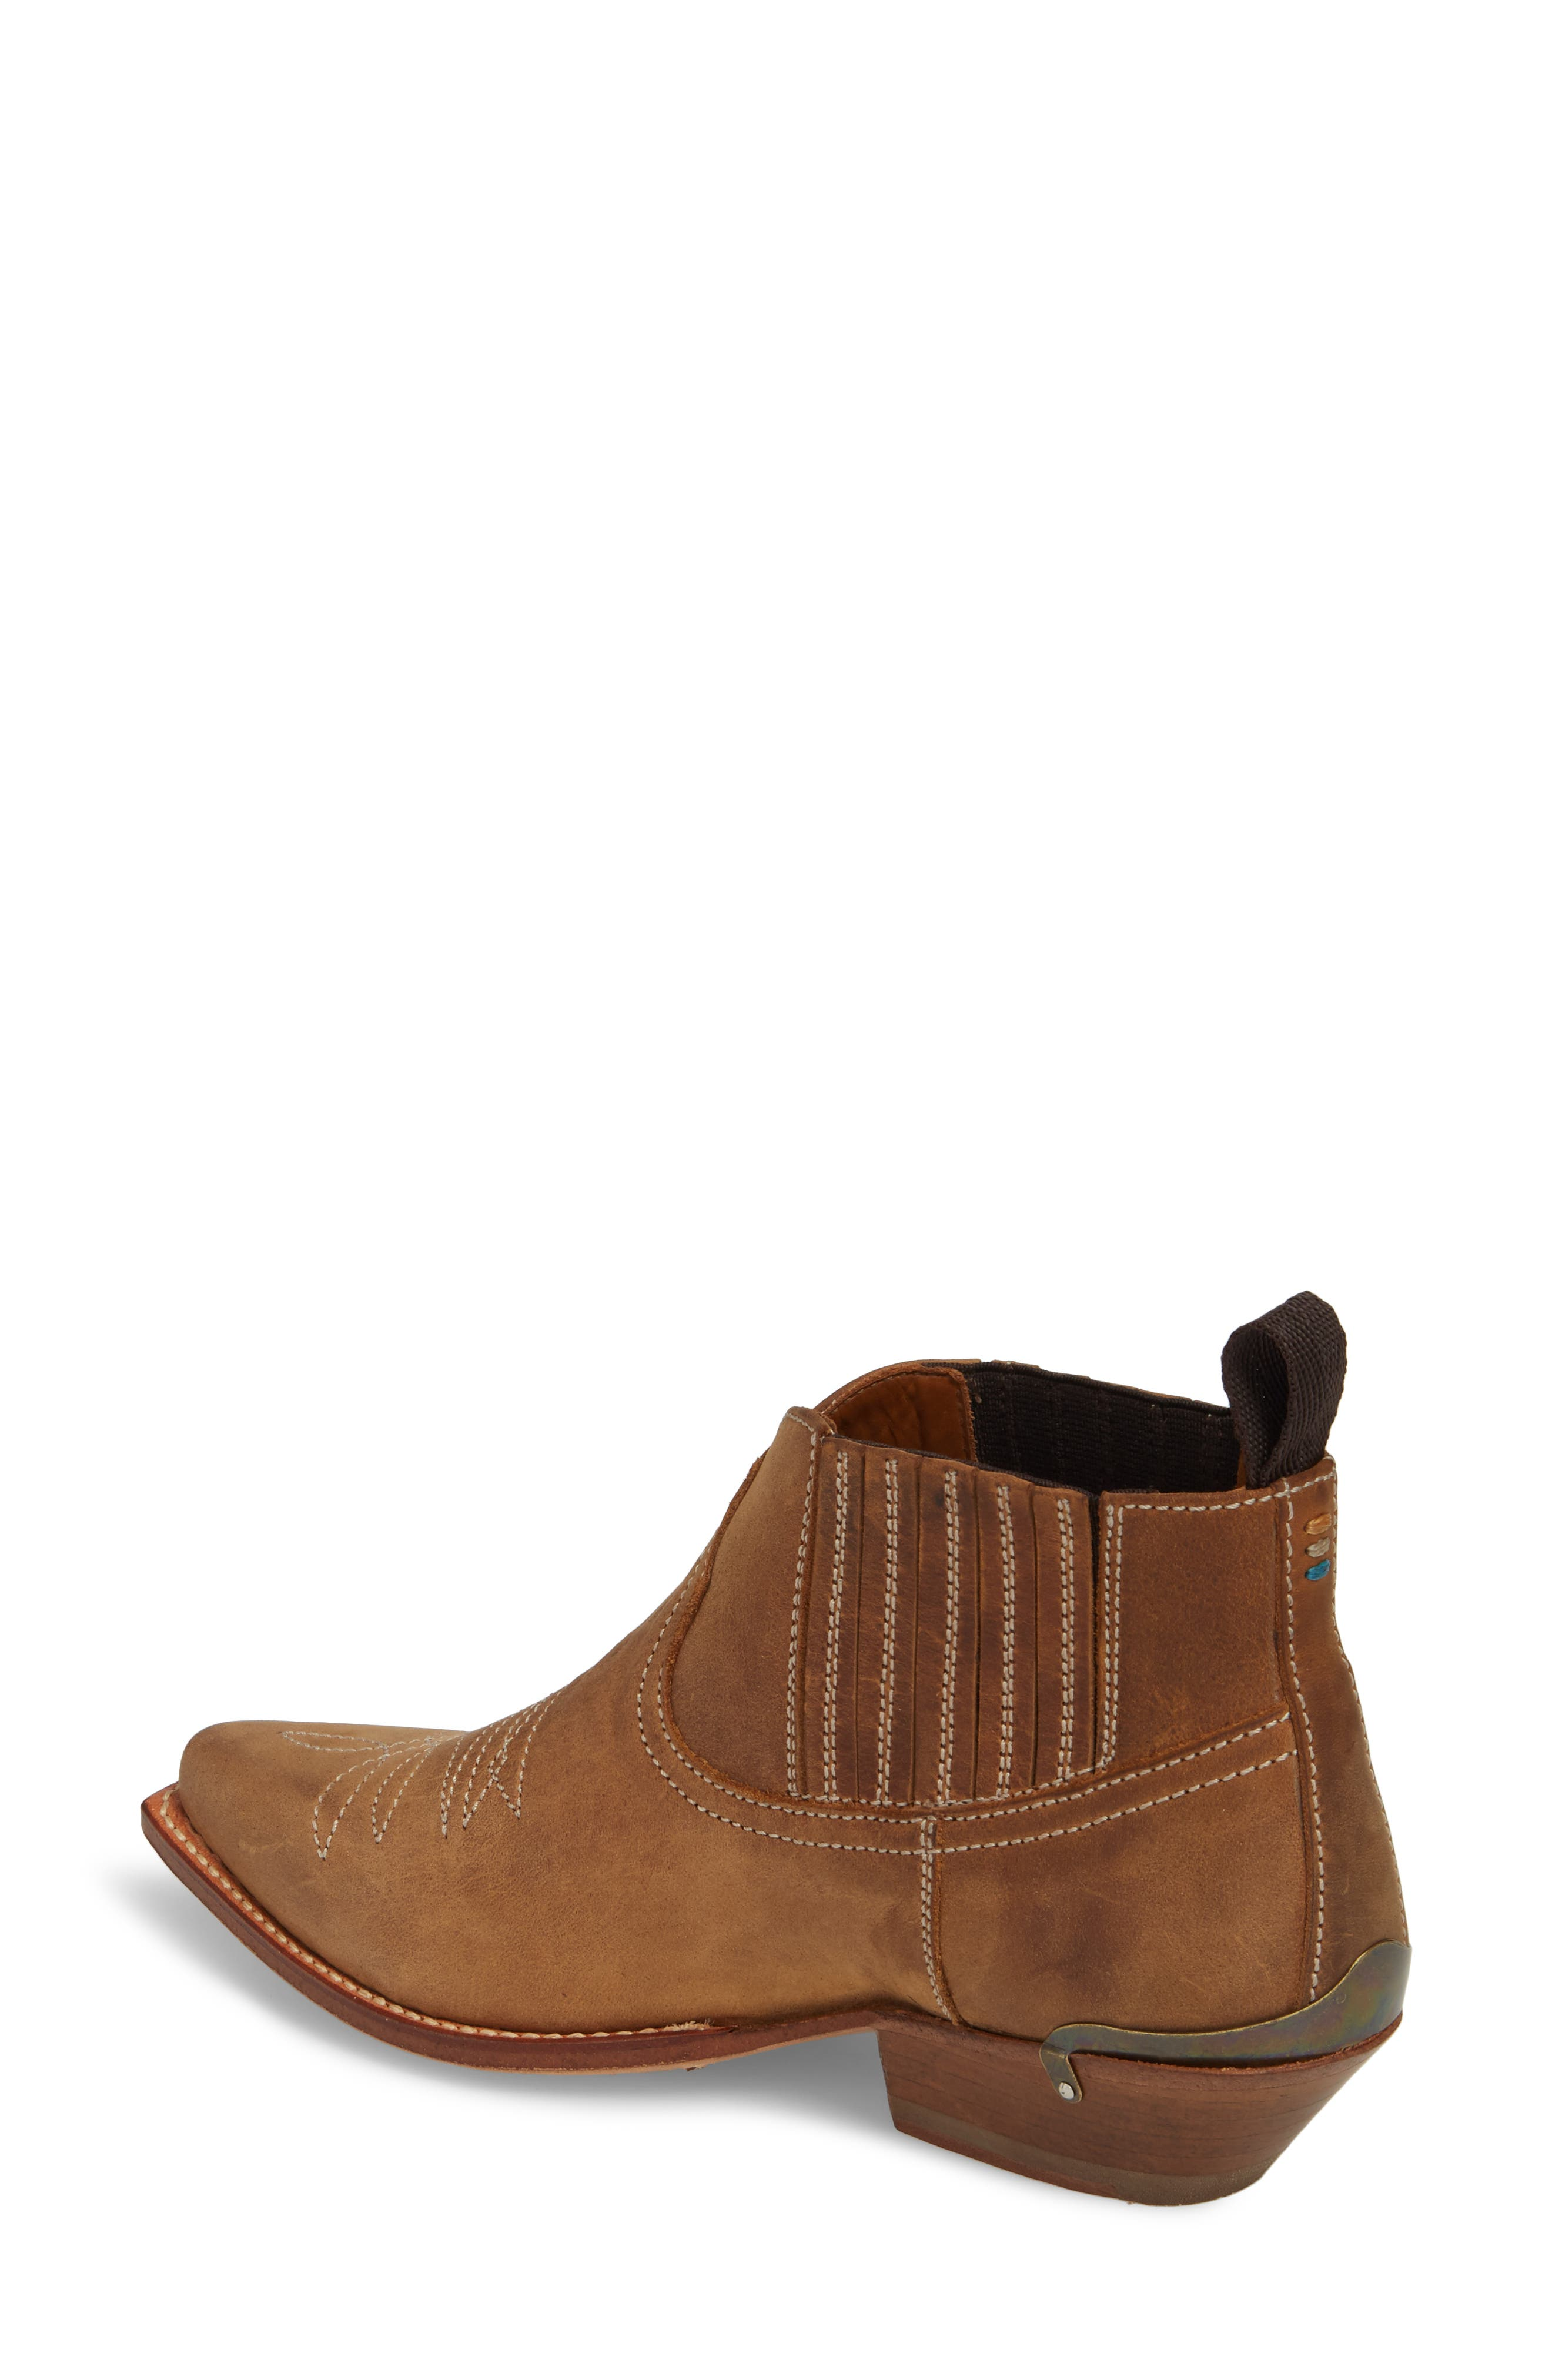 Jalon Western Bootie,                             Alternate thumbnail 2, color,                             200